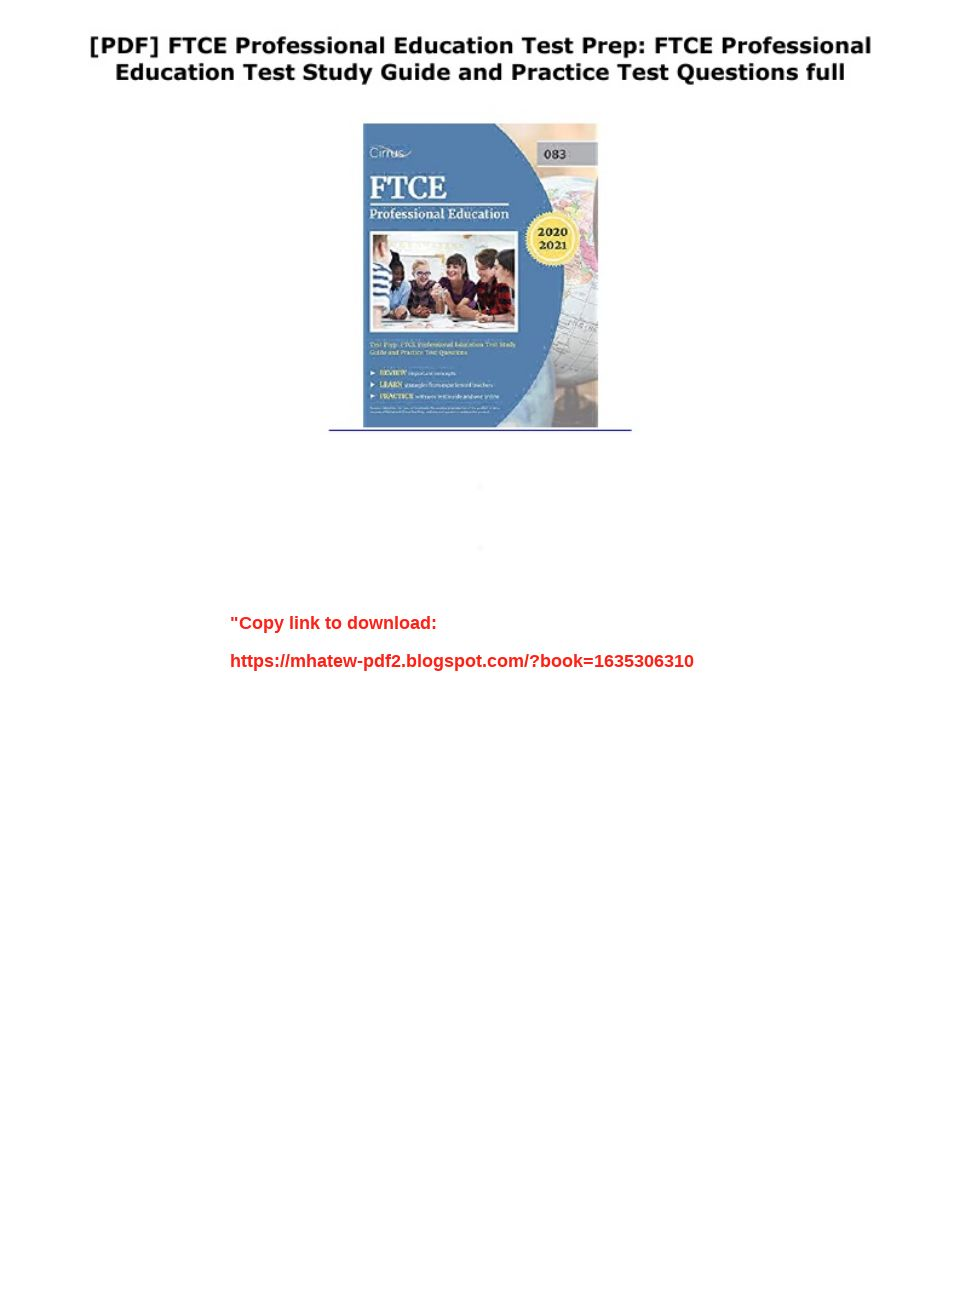 Ftce Professional Education Test Study Guide Pdf